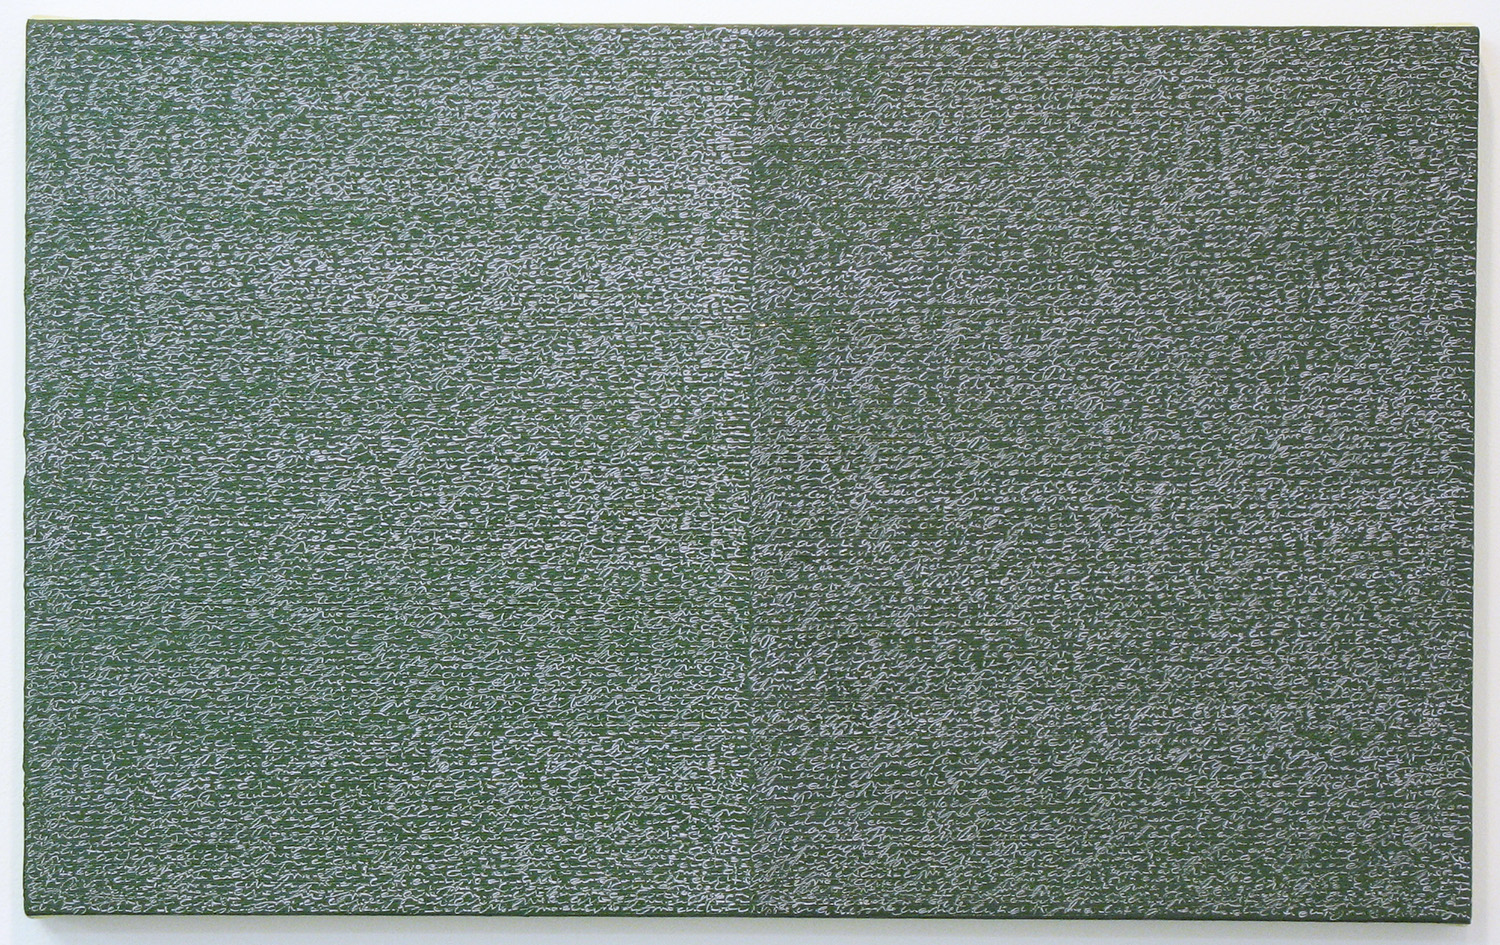 Open Book -pink-green-<br>oil and amber on canvas over panel, 37 x 60 cm, 2008